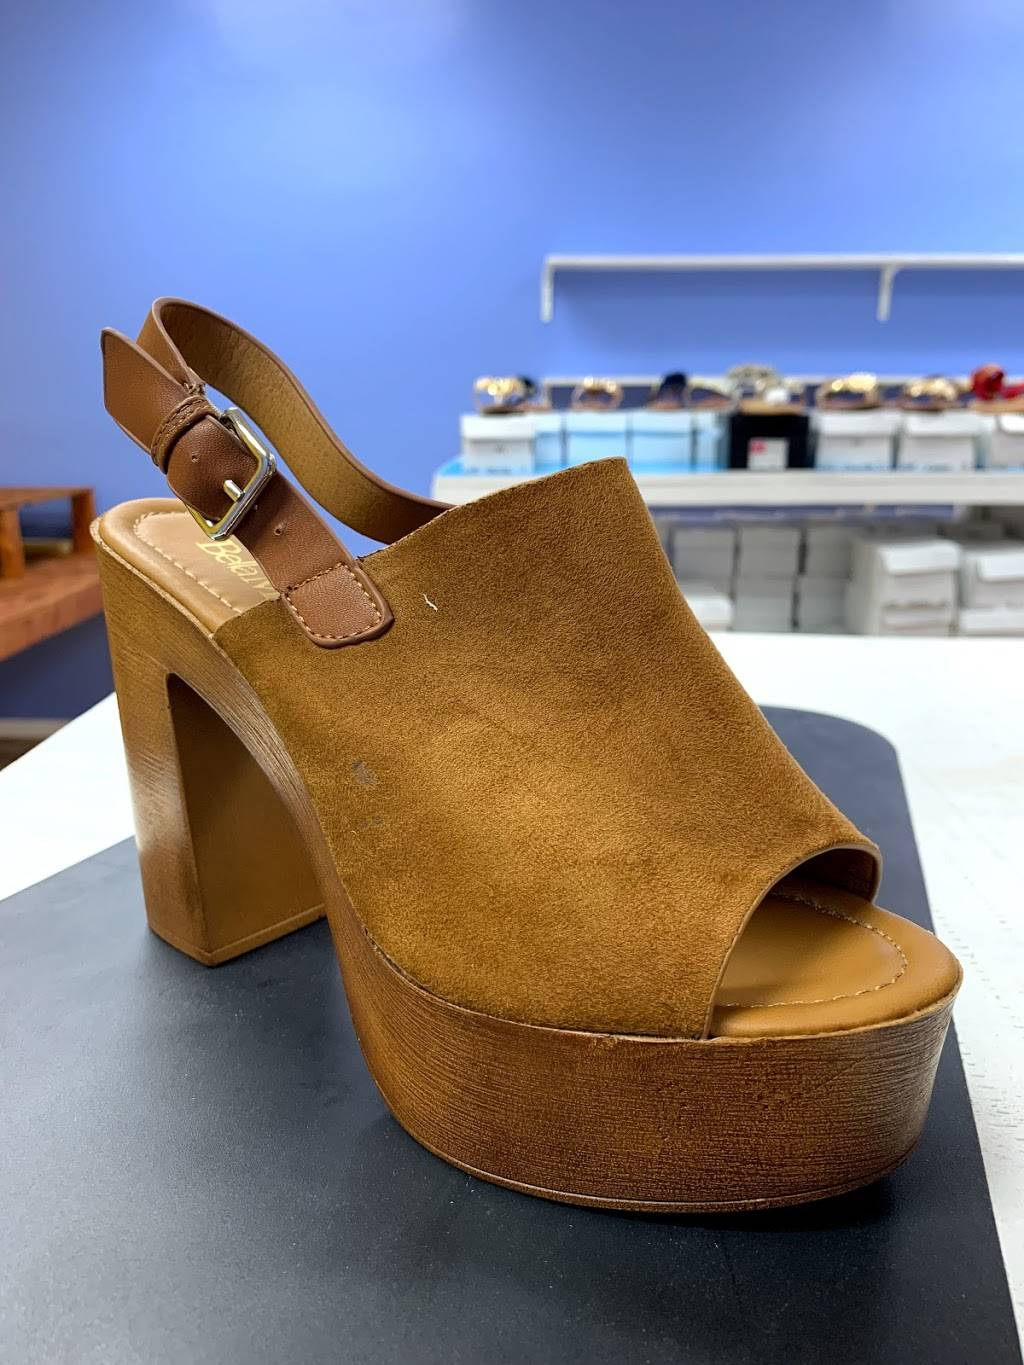 Boots & Shoes 4 You - shoe store    Photo 9 of 9   Address: 4207 W Illinois Ave #100, Dallas, TX 75211, USA   Phone: (469) 941-4043